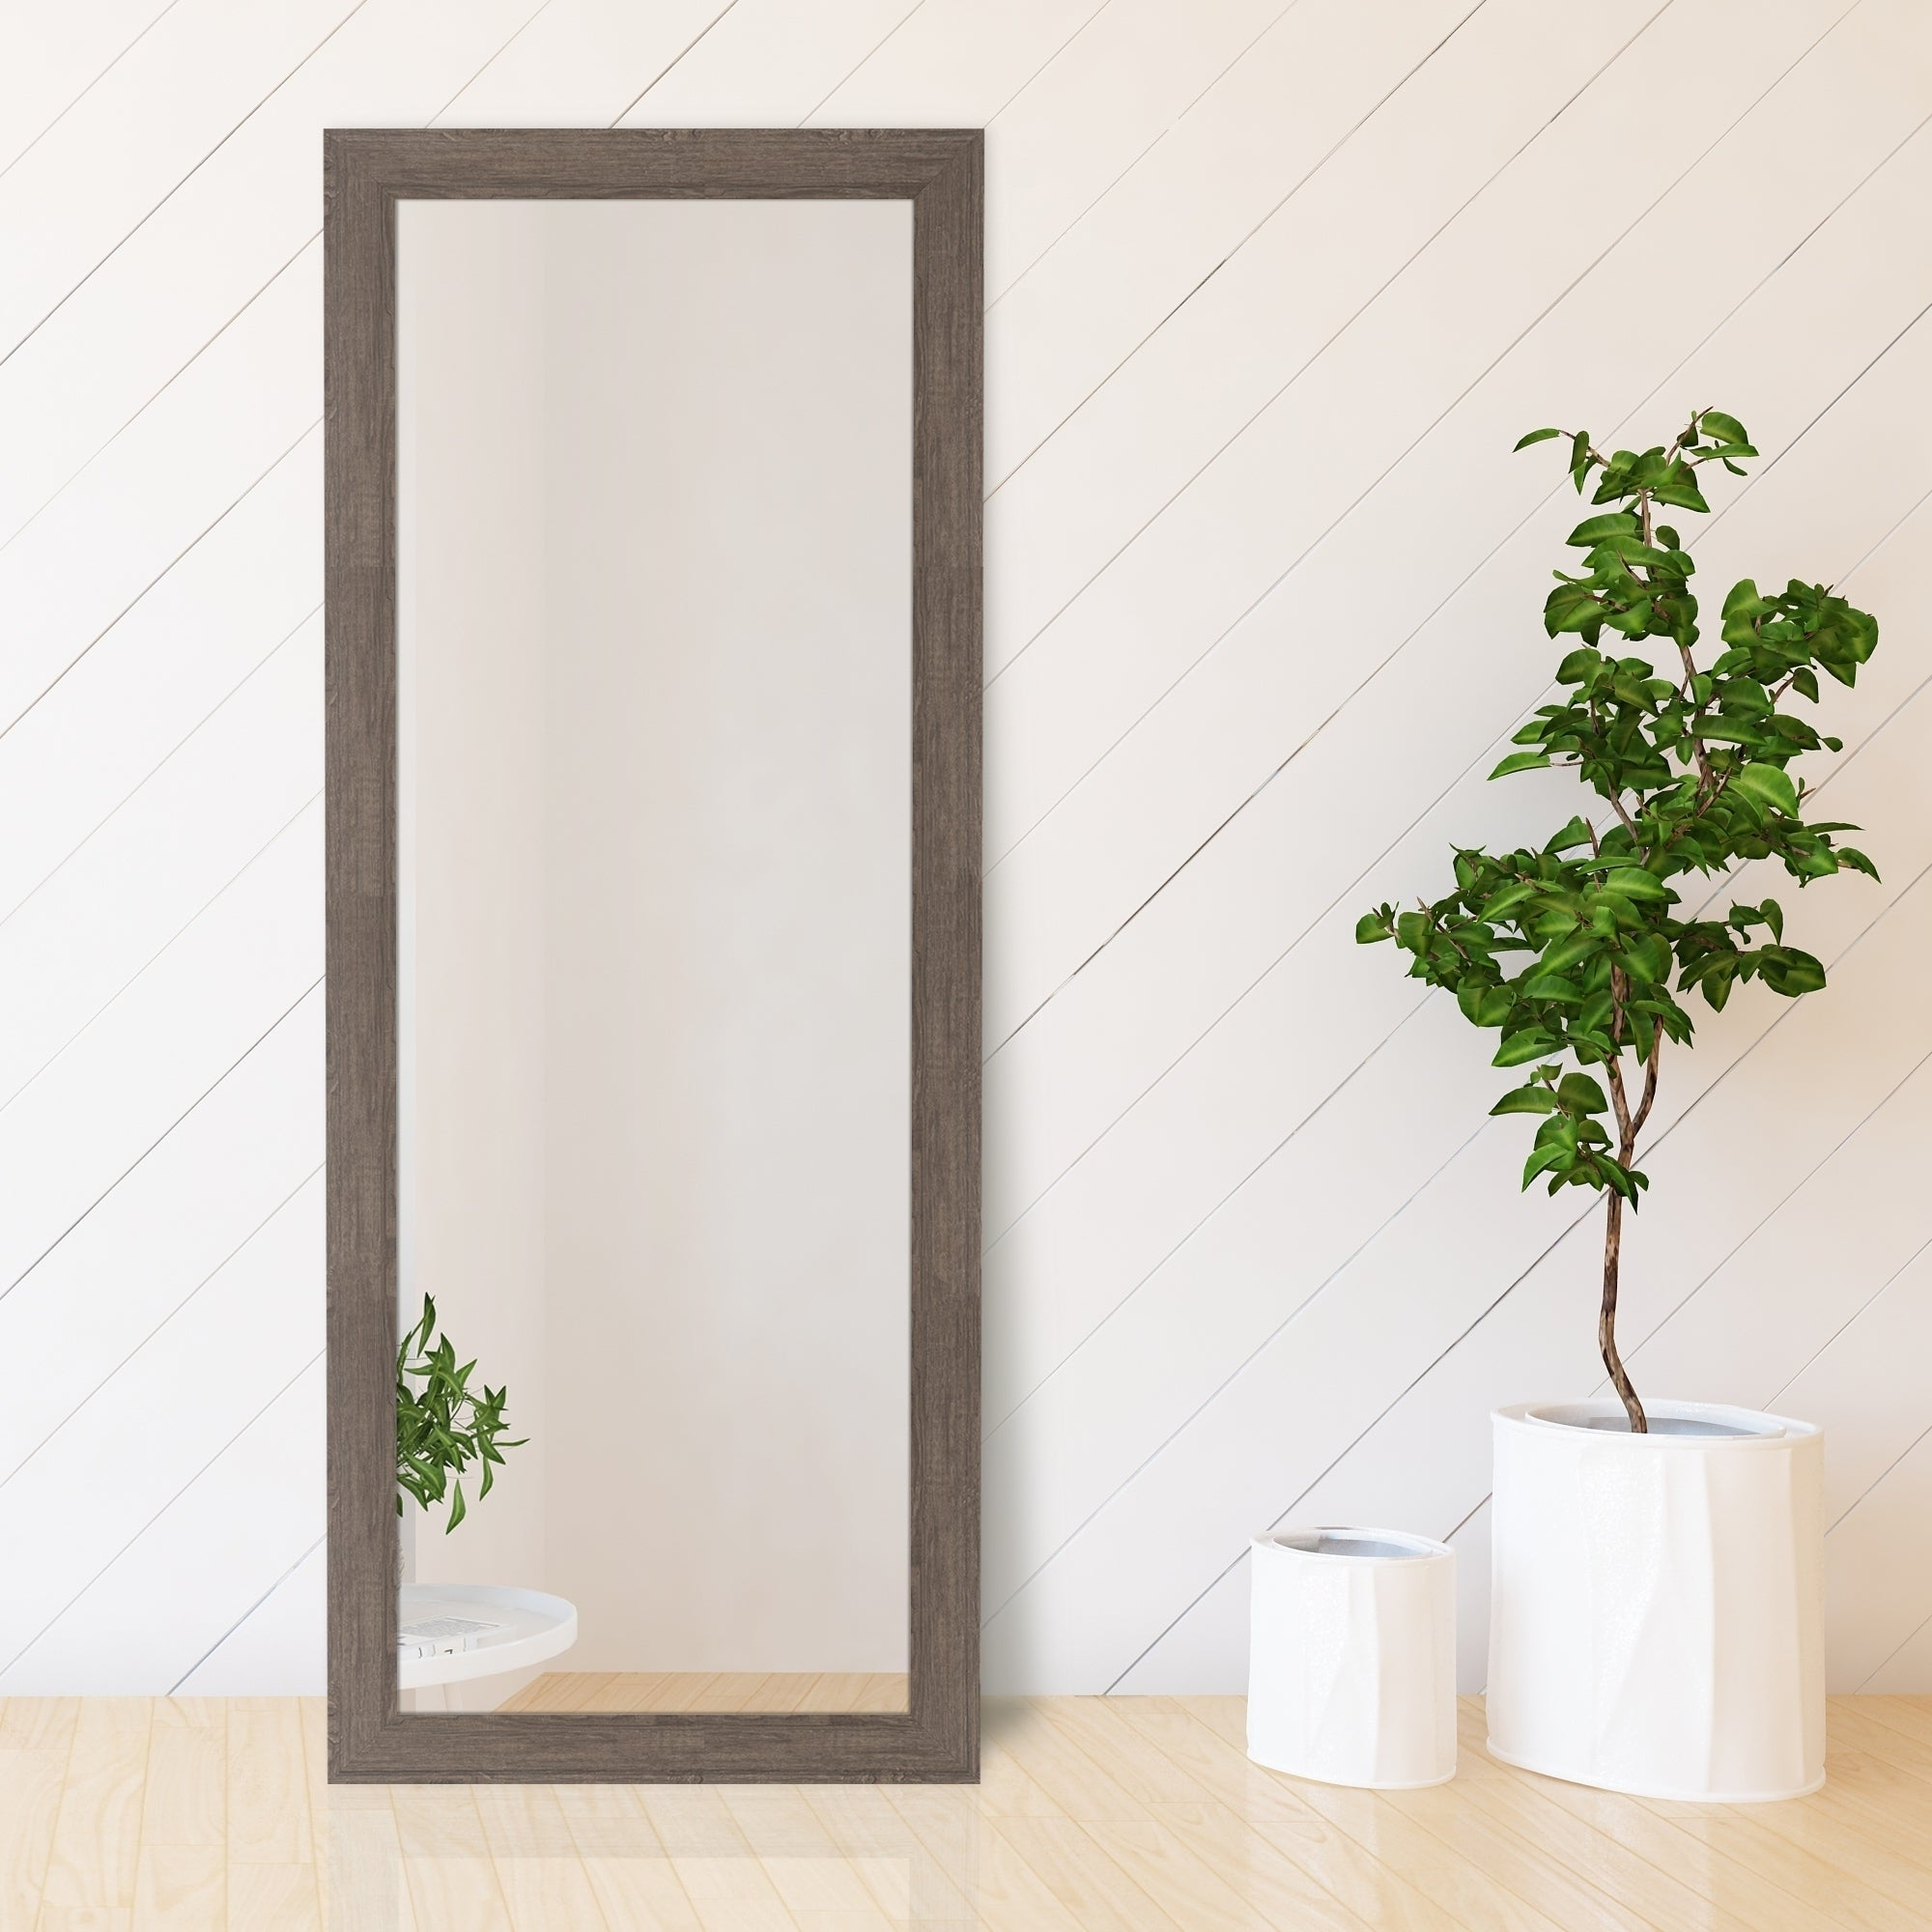 2020 Gallery Solutions Graywash Woodgrain Framed Accent Wall Mirror – Grey In Farmhouse Woodgrain And Leaf Accent Wall Mirrors (View 15 of 20)